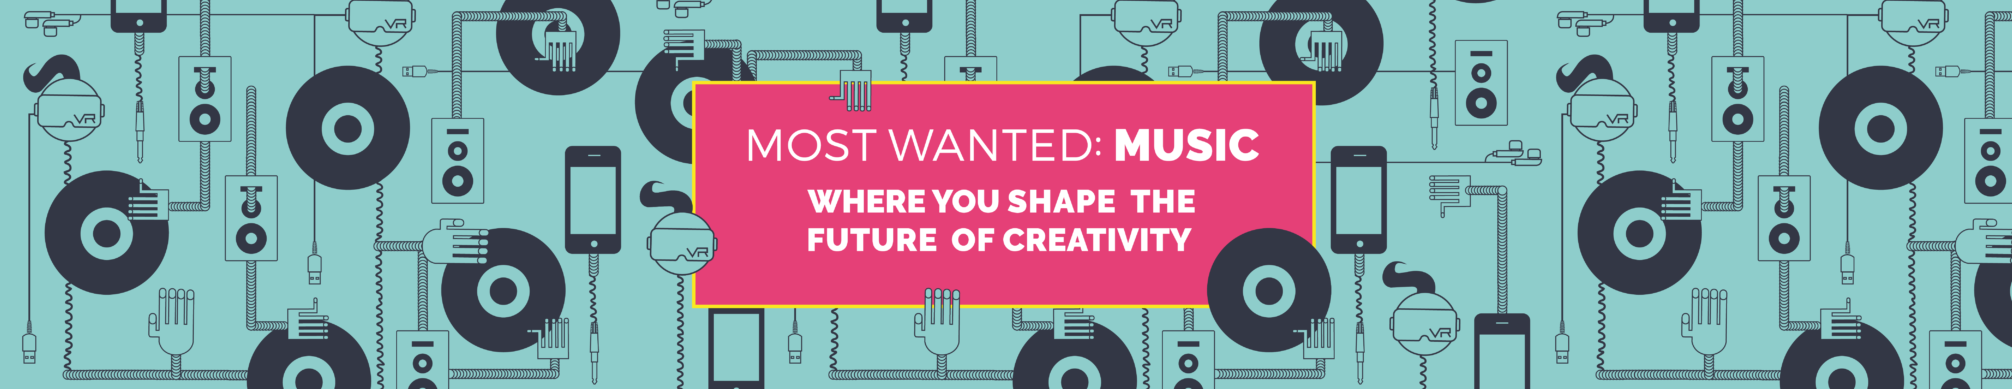 Most Wanted Music, MWM, MW:M, BMC, Listen to Berlin, Award, Musikkonferenz, Music Business, Conference, November 2018, Alte Münze, Event, Music Tech, CI, AI, KI, VR, Music App, Musikwirtschaft, Musikbranche, Business Event